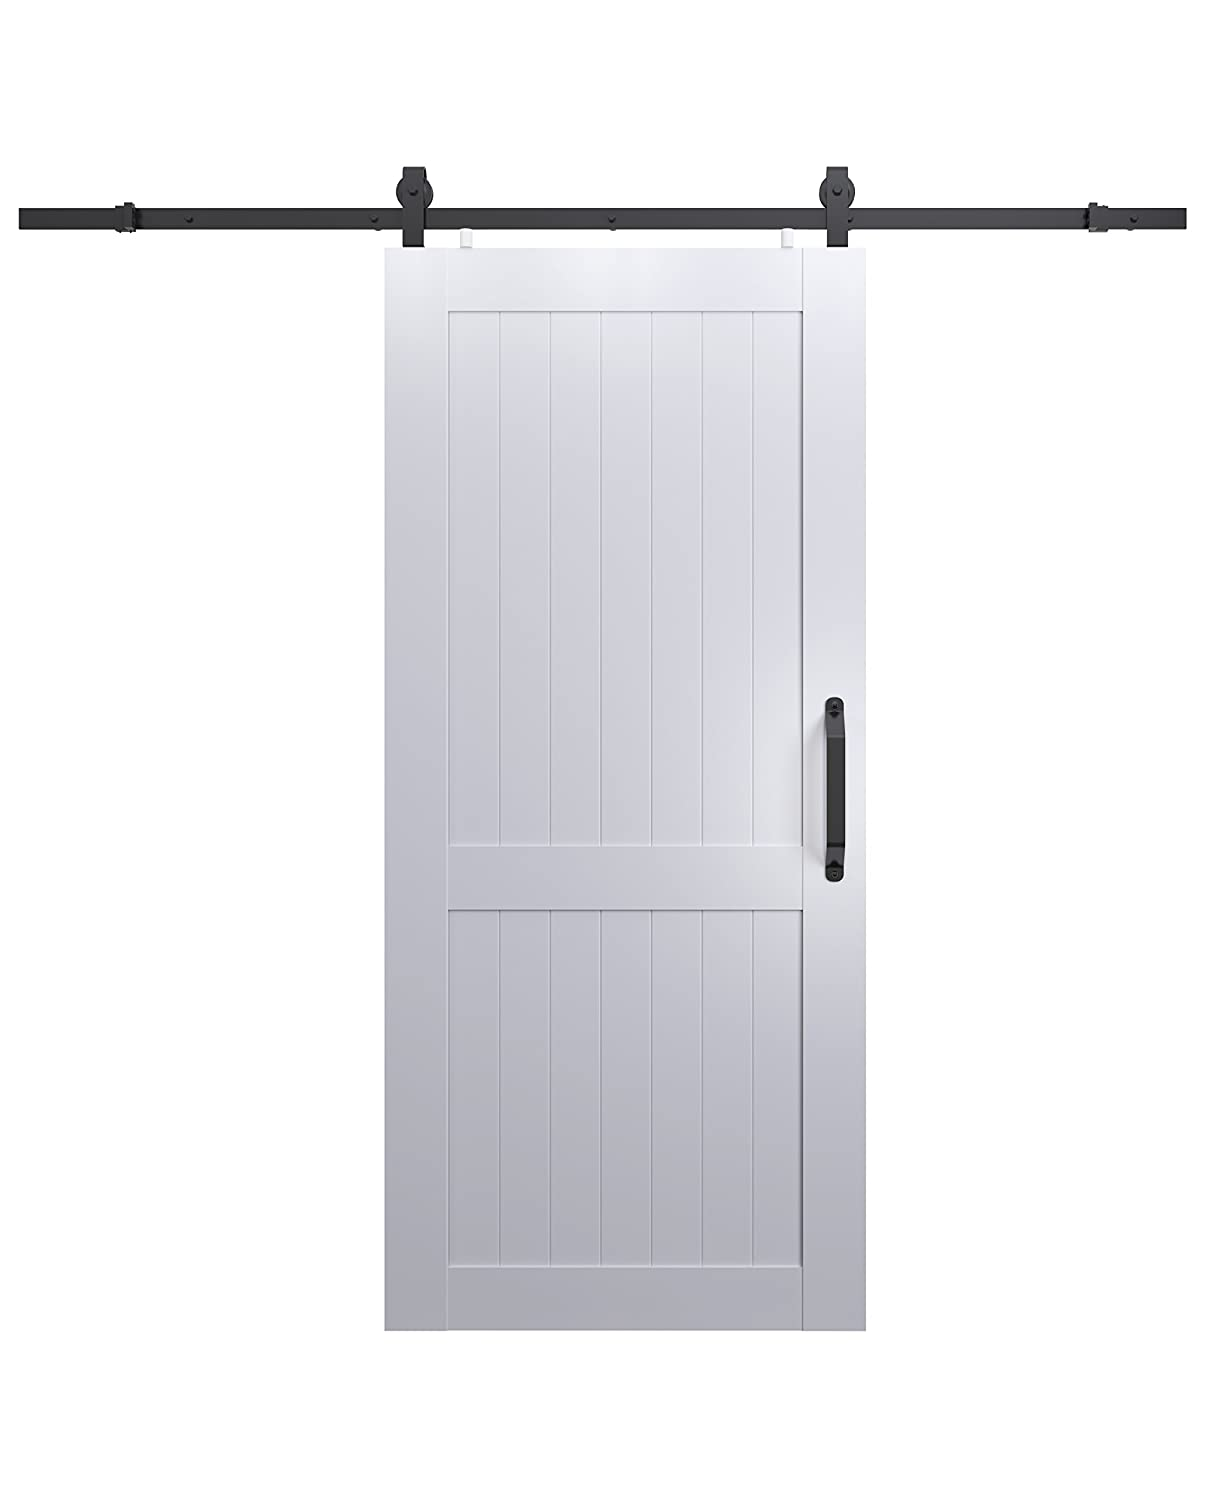 LTL Home Products MLB3684HKD Millbrooke Ready to Assemble PVC Barn Door Kit, 36 x 84 Inches, White